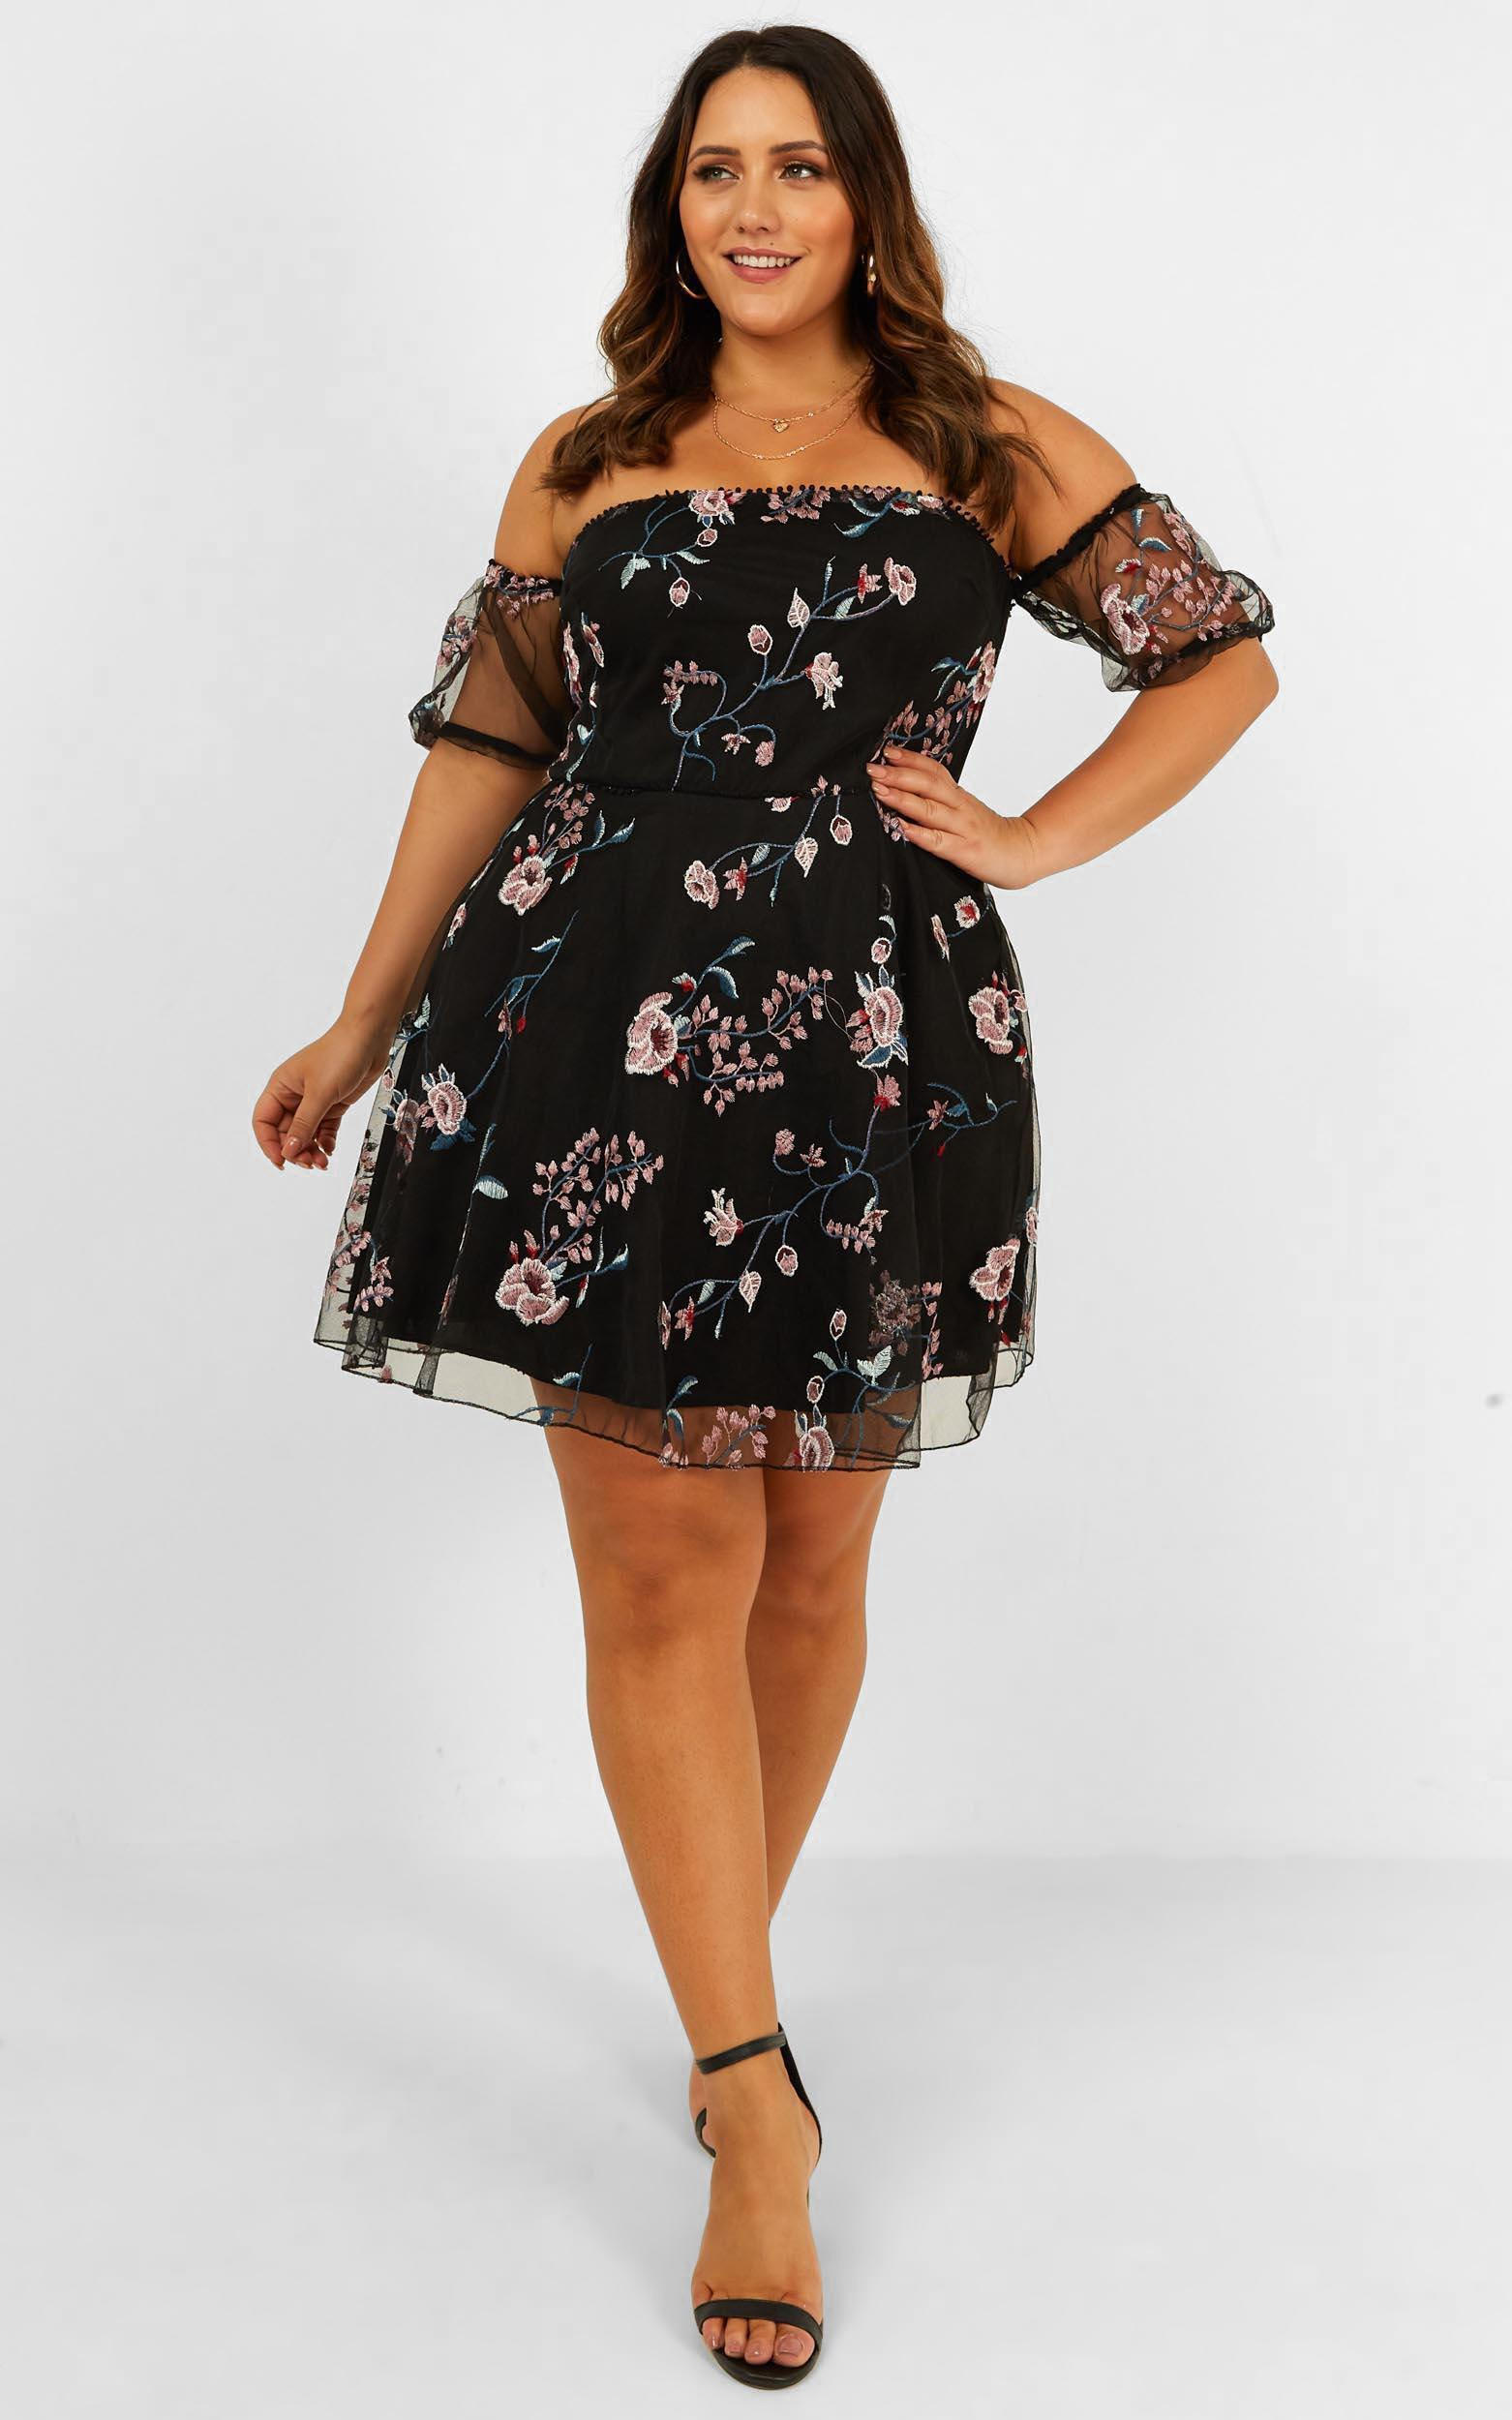 Chic Honey Dress In Black Embroidery - 20 (XXXXL), Black, hi-res image number null